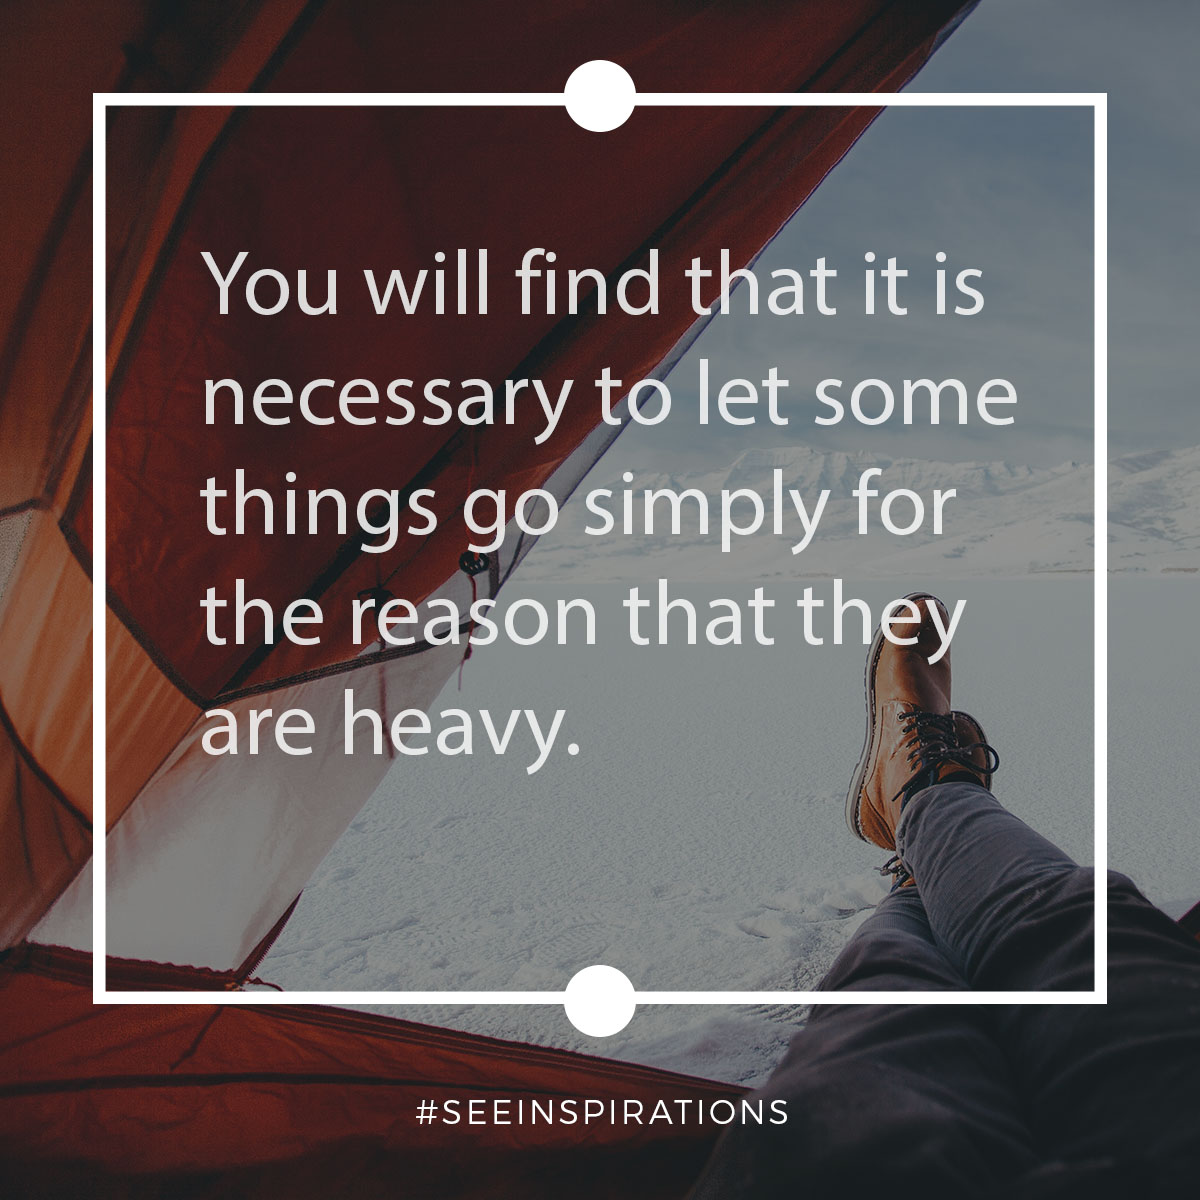 You will find that it is necessary to let some things go simply for the reason that they are heavy.